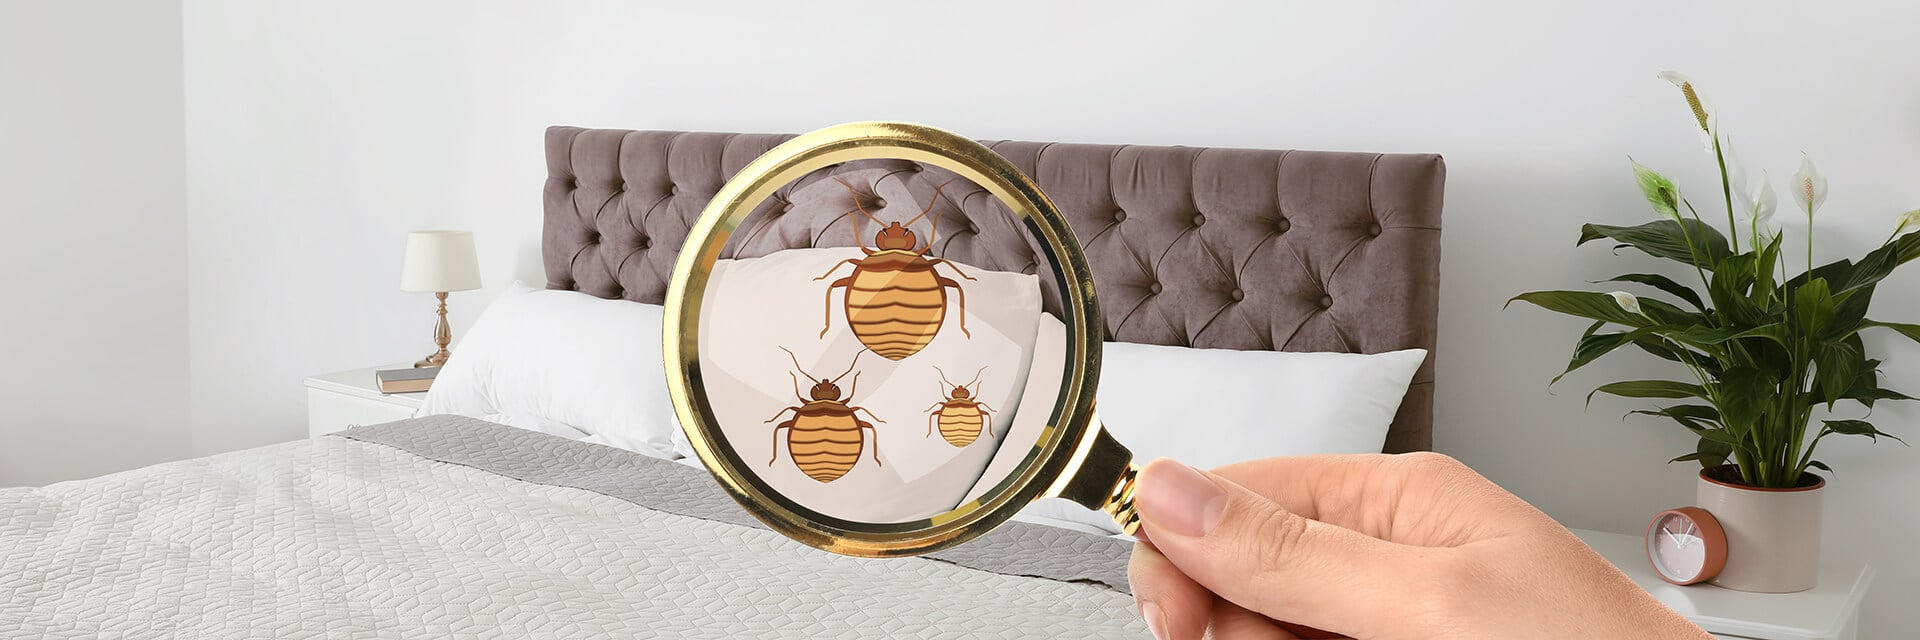 Detect Bed bug using a magnifier